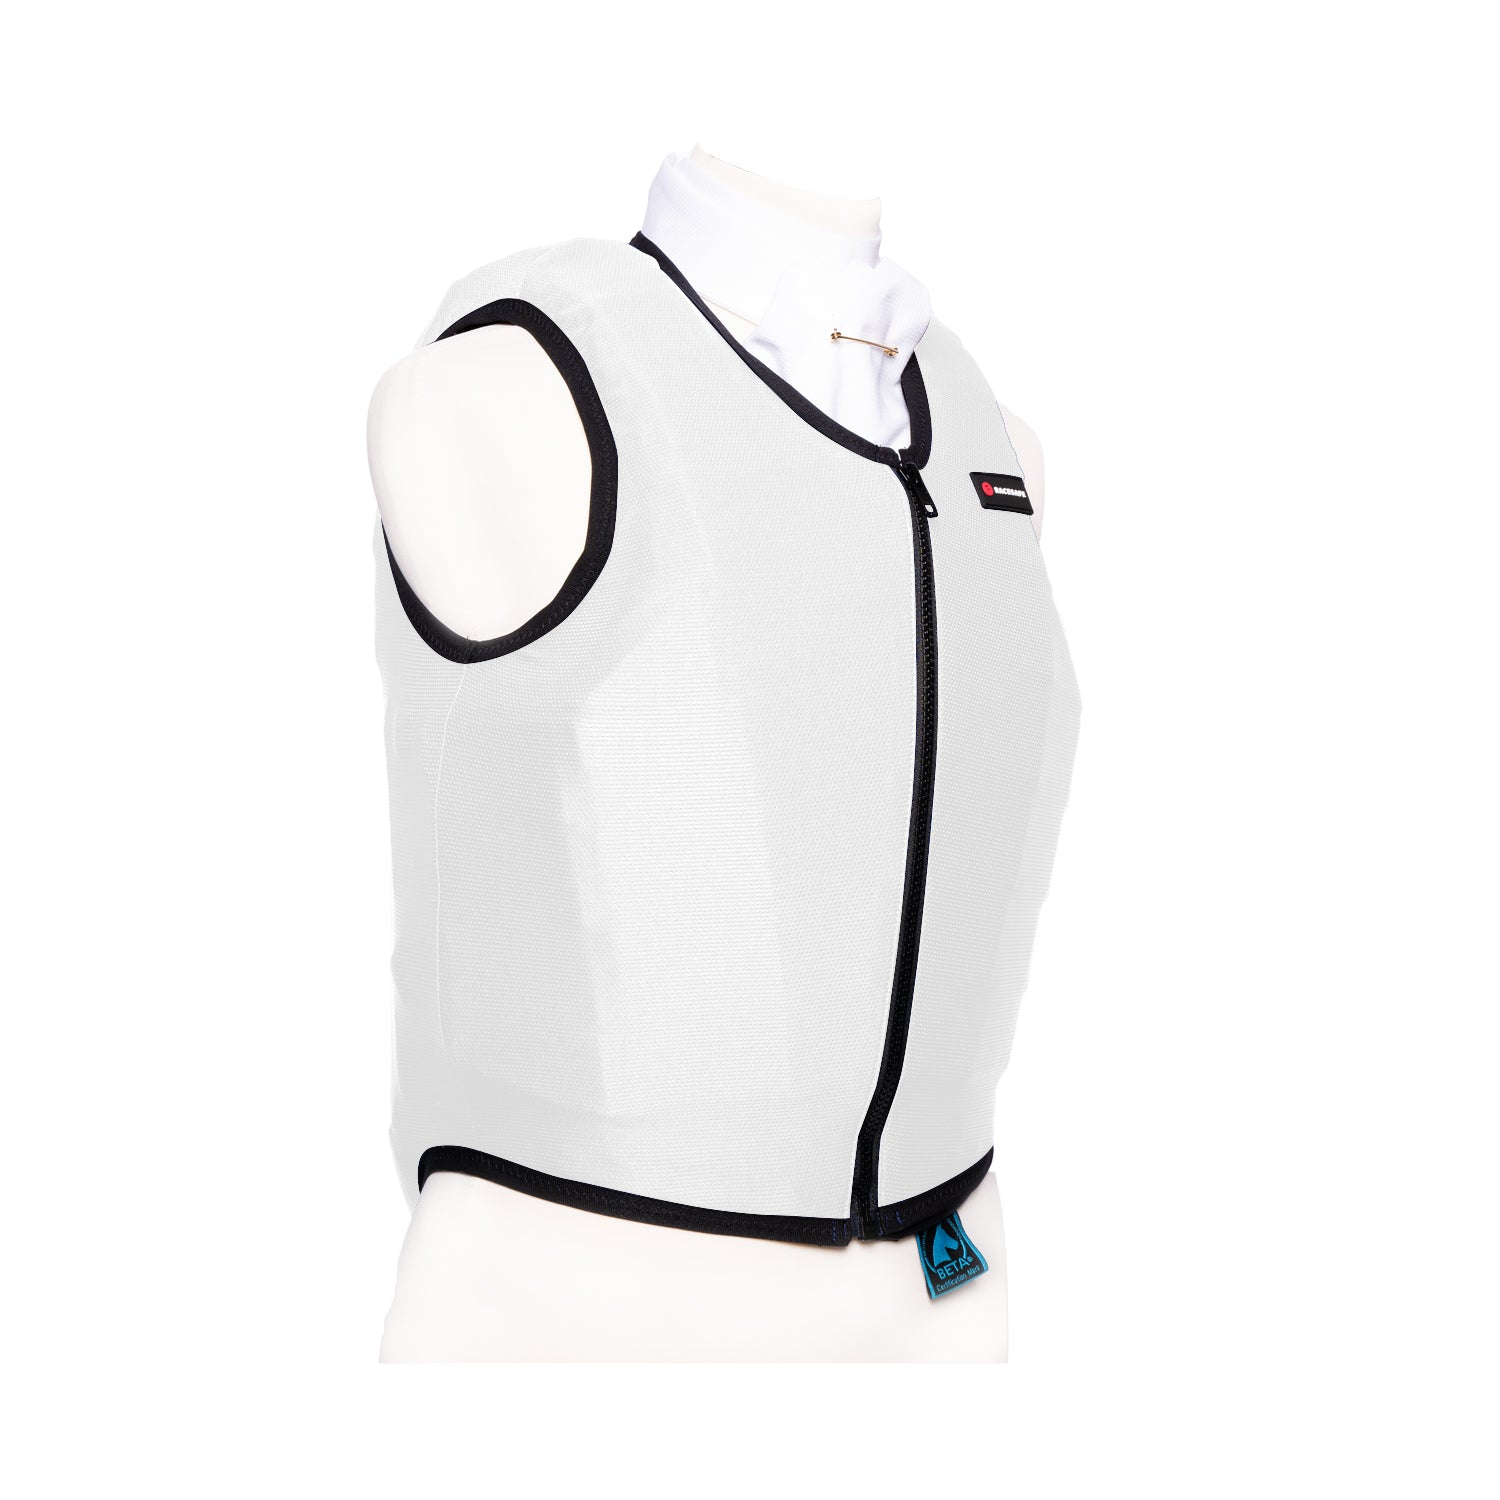 Body Protector Cover (Childs) - Racesafe